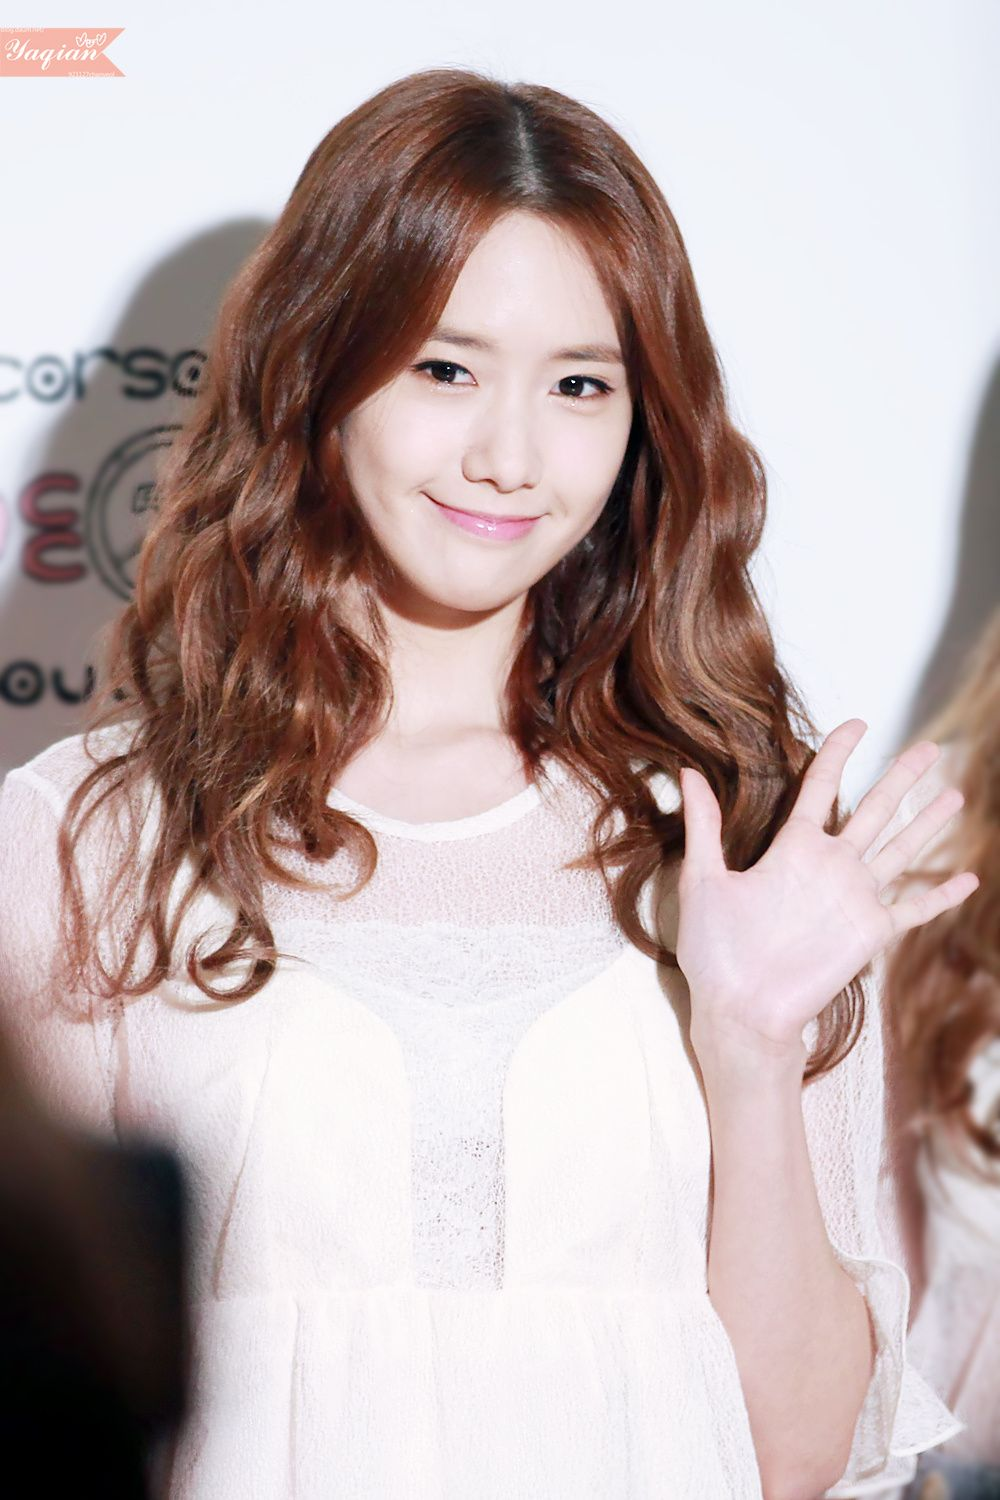 #Yoona #윤아 #ユナ #SNSD #少女時代 #소녀시대 #GirlsGeneration Corso Cosmo event 130328